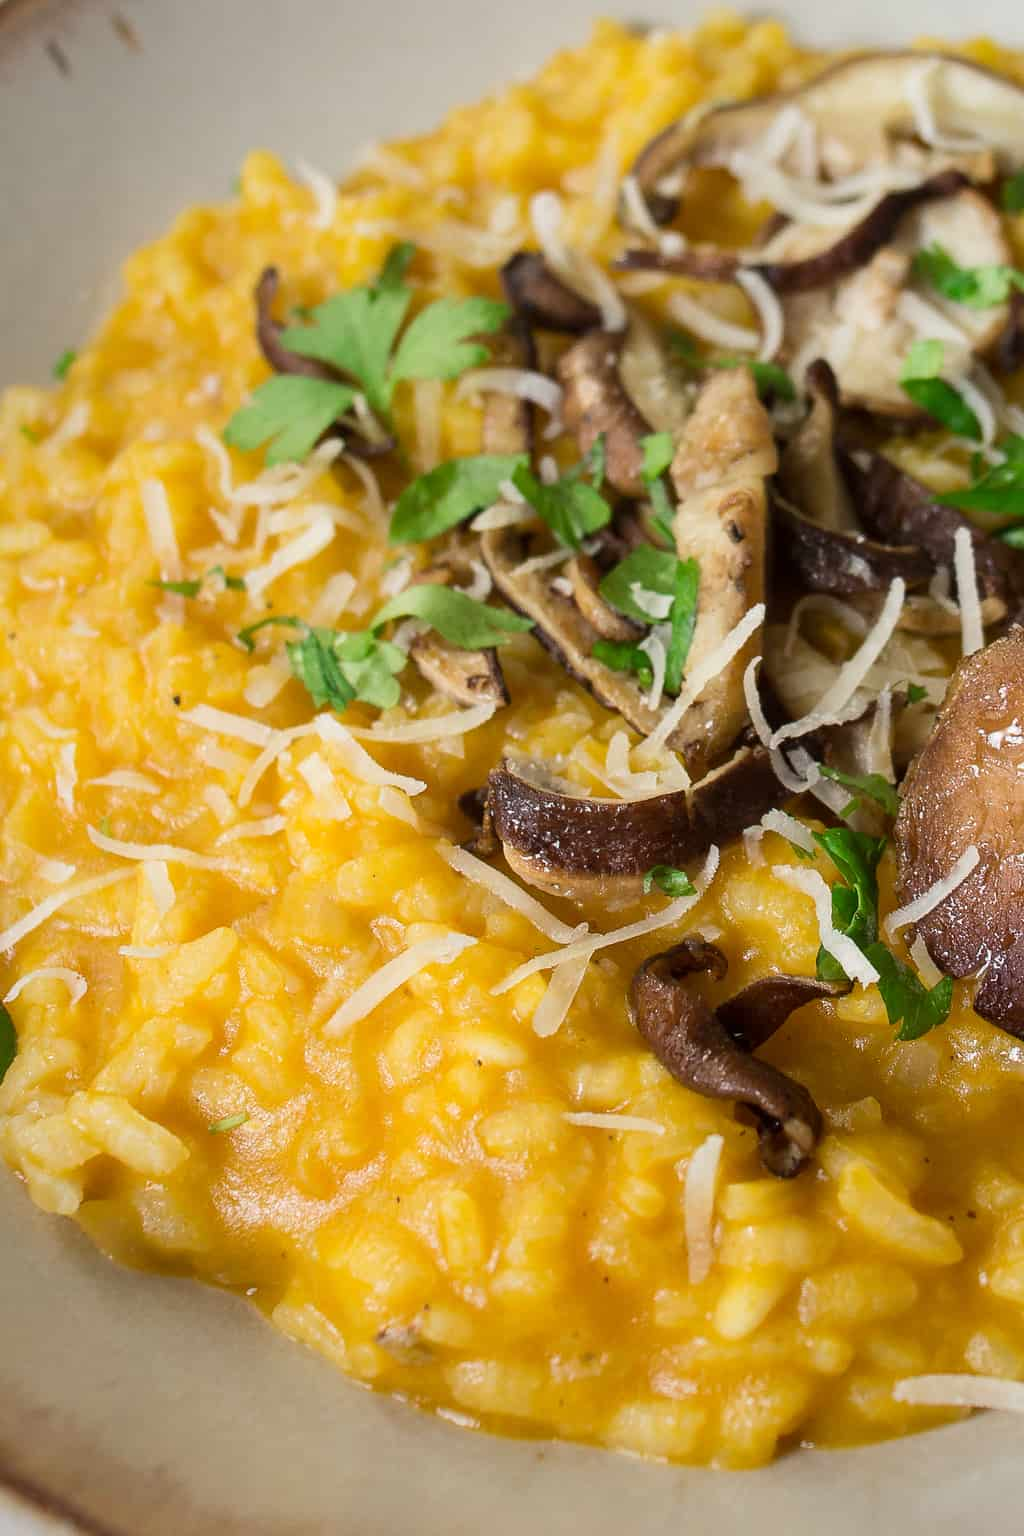 Risotto made with canned pumpkin puree and Shiitake mushrooms sprinkled with Parmesan cheese